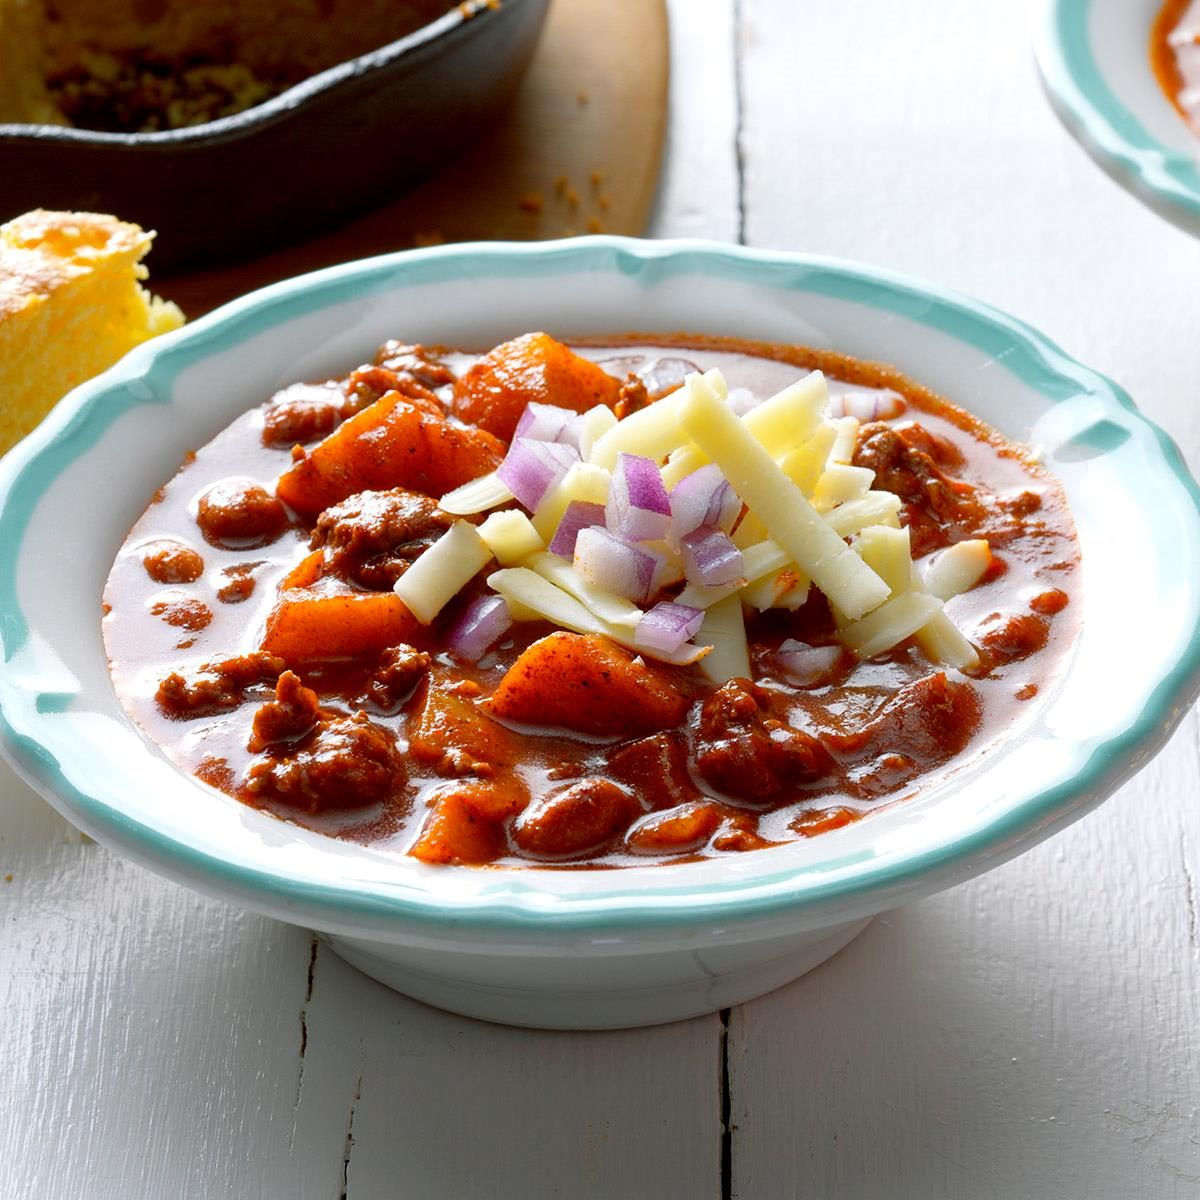 12 Things That Will Make Your Chili SO Much Better